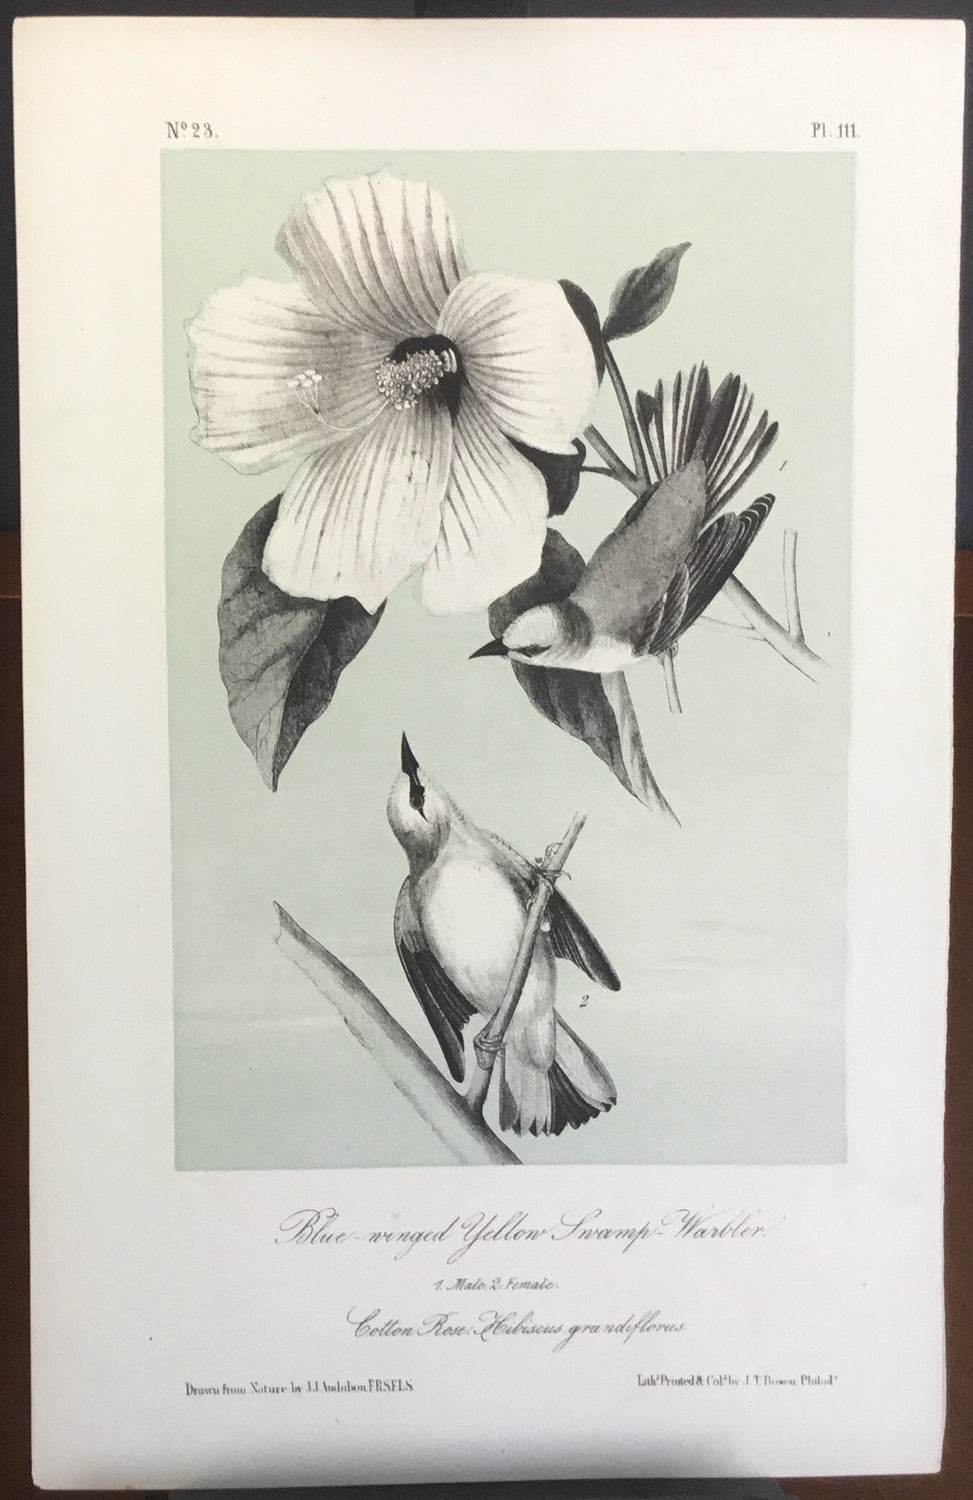 Audubon Octavo Blue-winged Yellow Swamp Warbler, plate 111, uncolored test sheet, 7 x 11